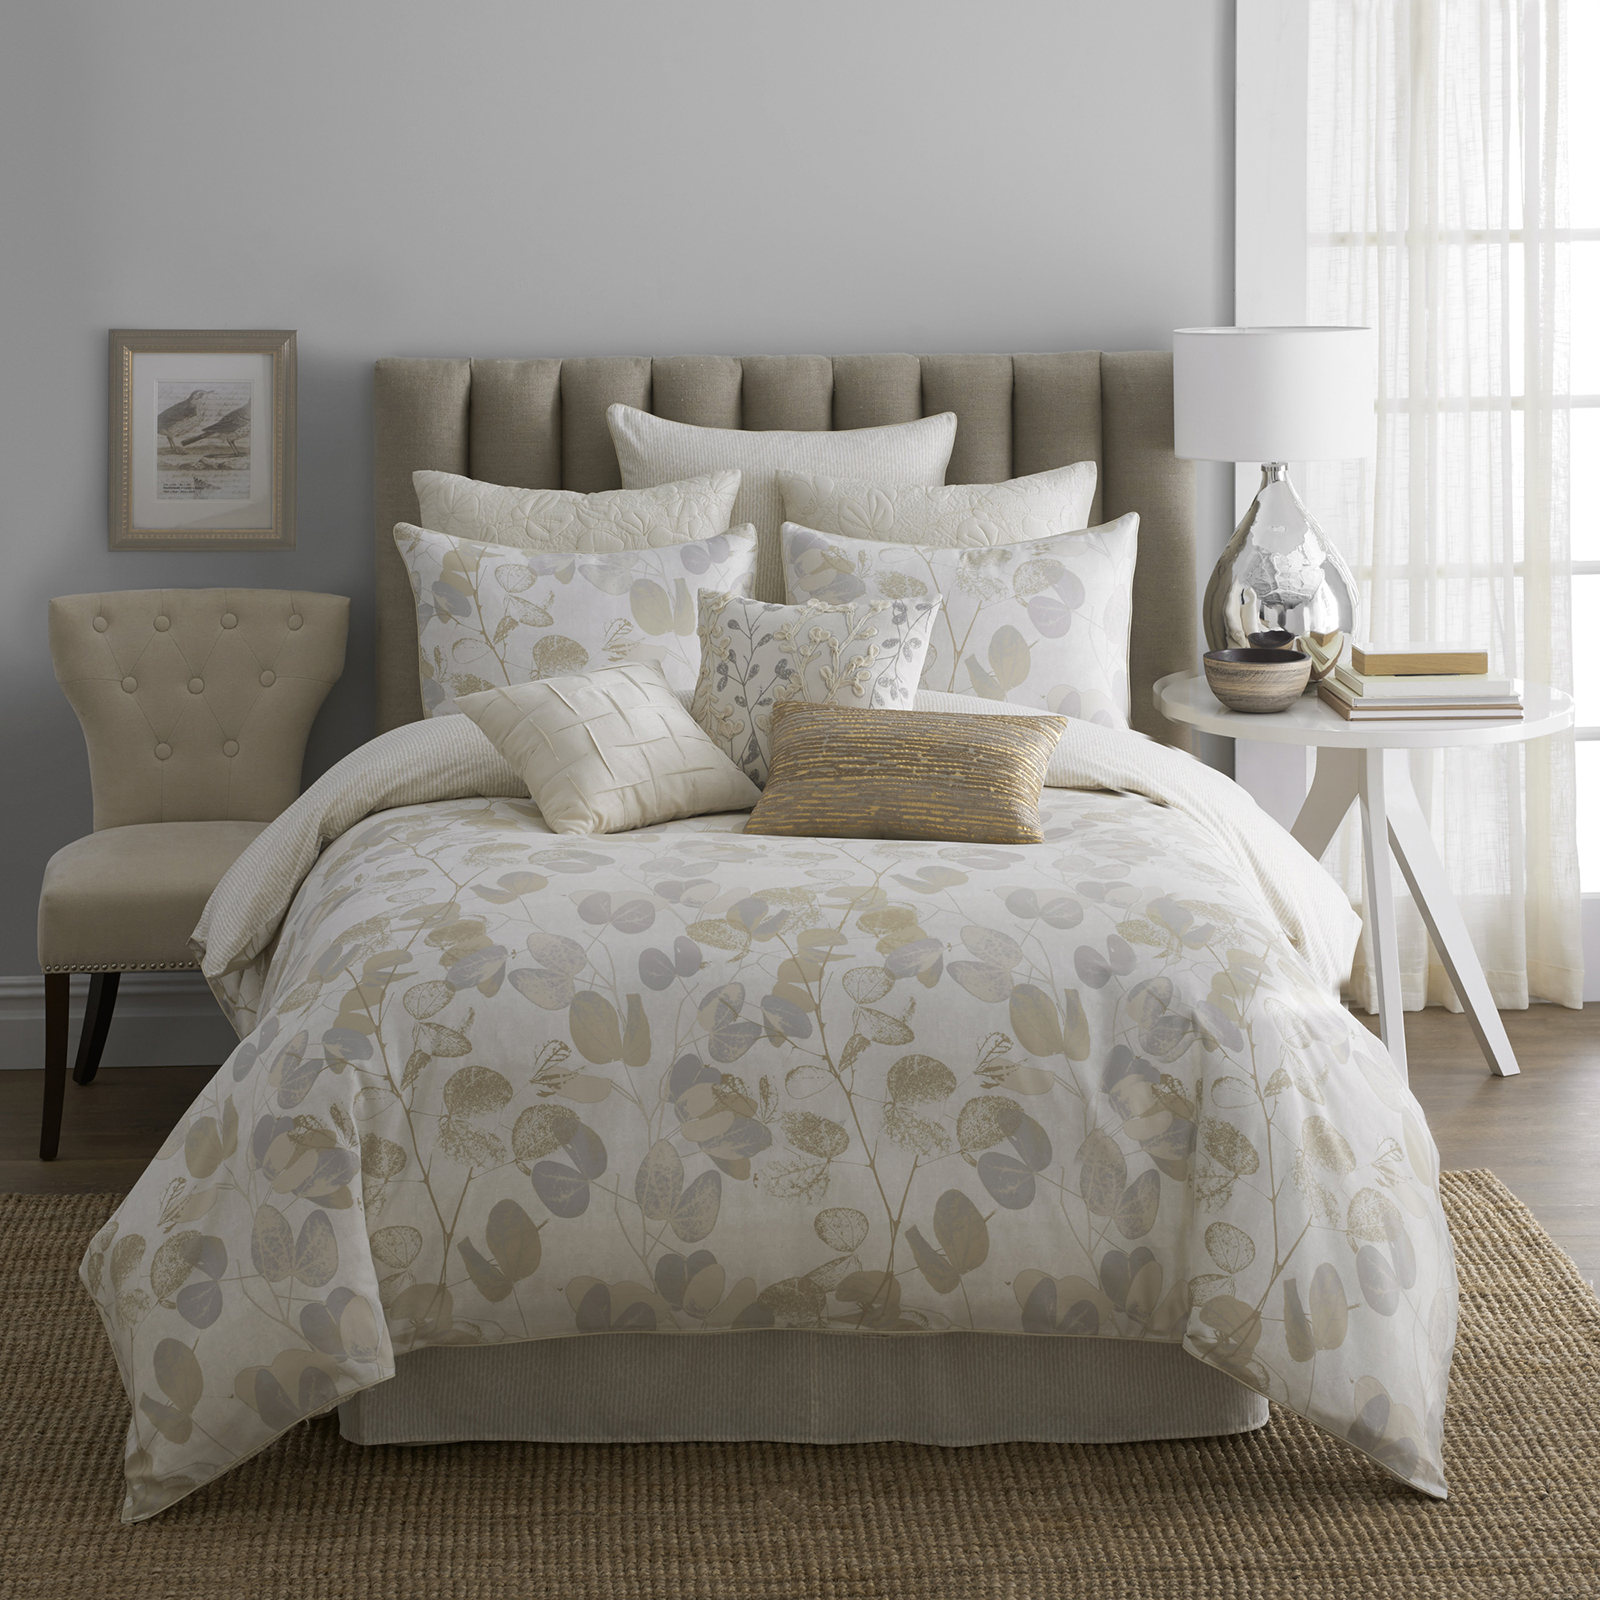 Kohls Bedroom Furniture Kohls Bedding Sets Bedding Sets